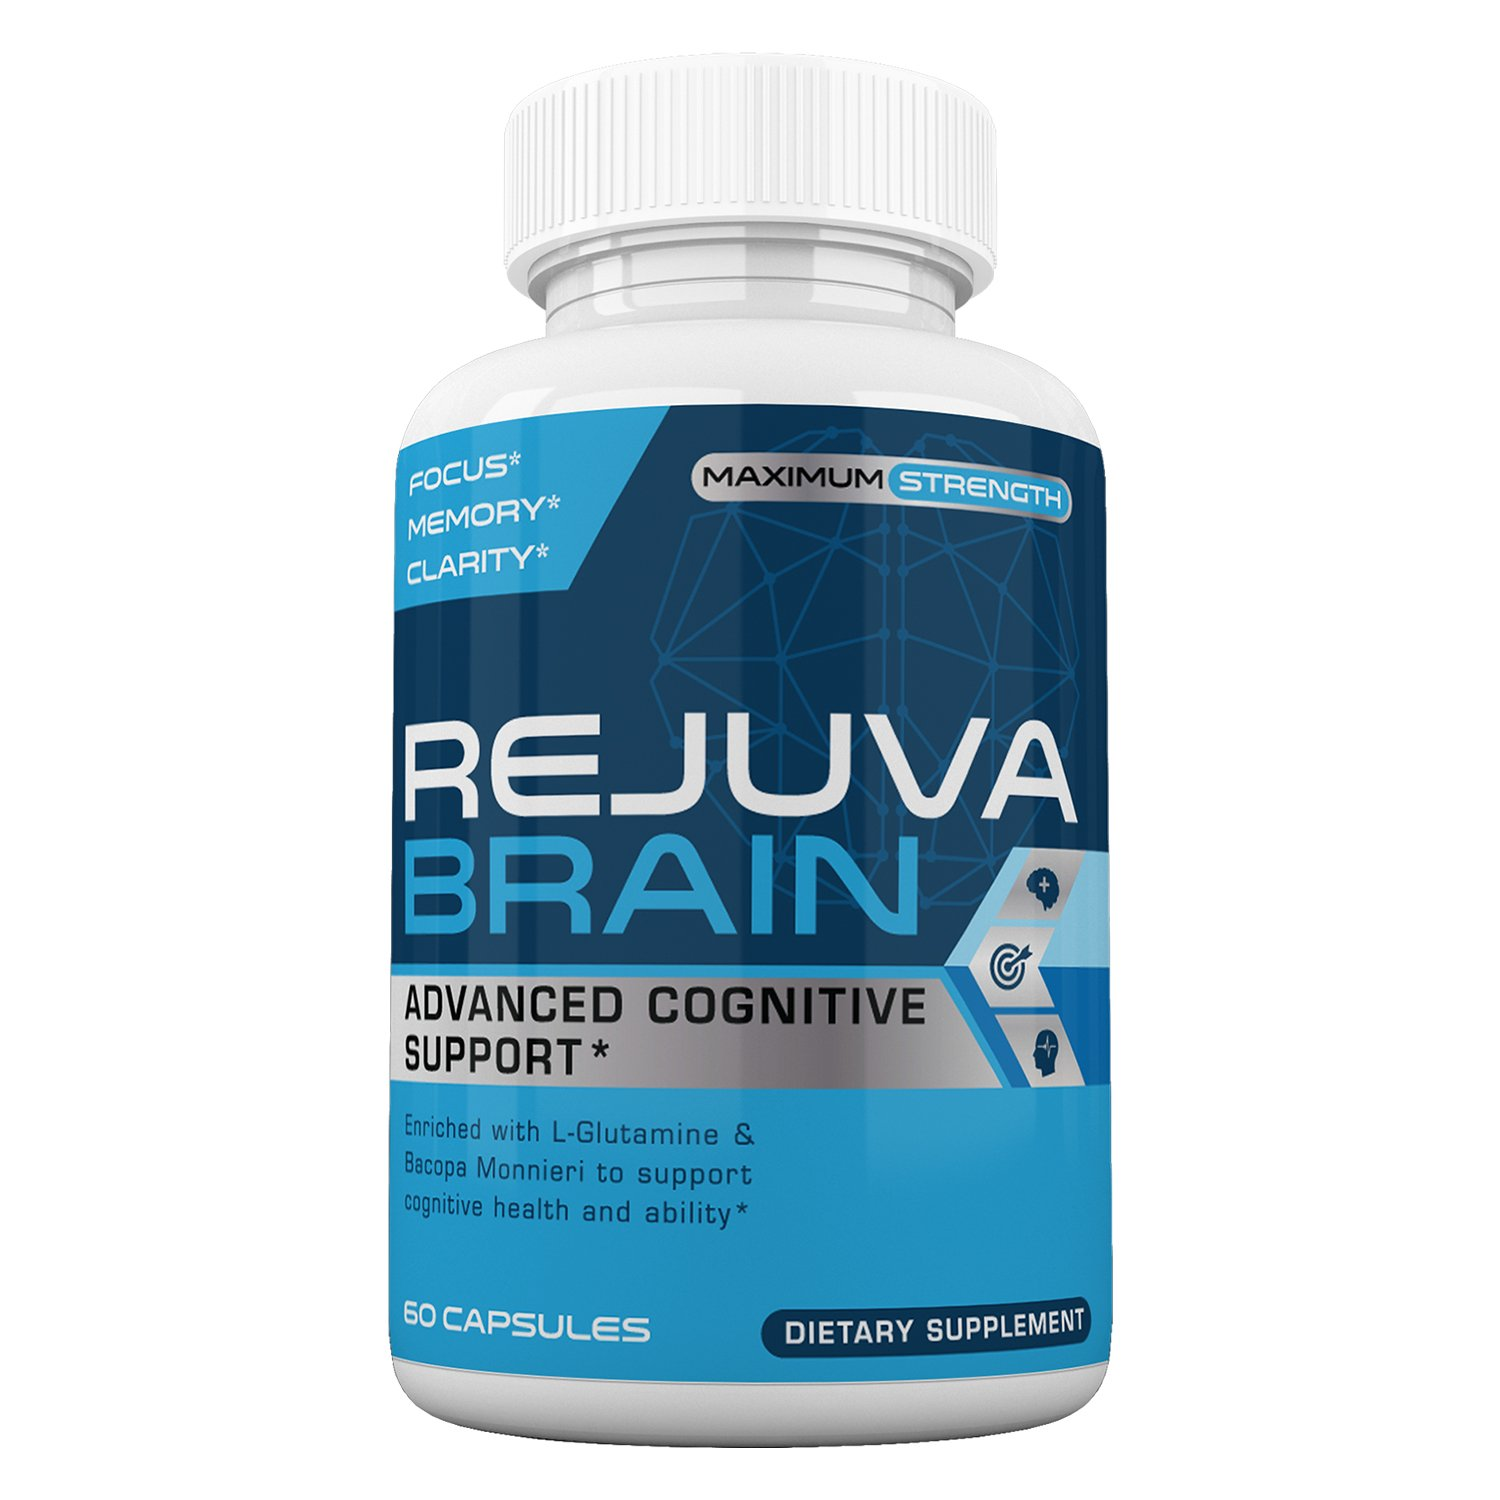 Rejuva Brain- Advanced Cognitive Support- Enriched w/L-Glutamine & Bacopa Monnieri to Support Cognitive Health and Ability by Rejuva Brain (Image #1)